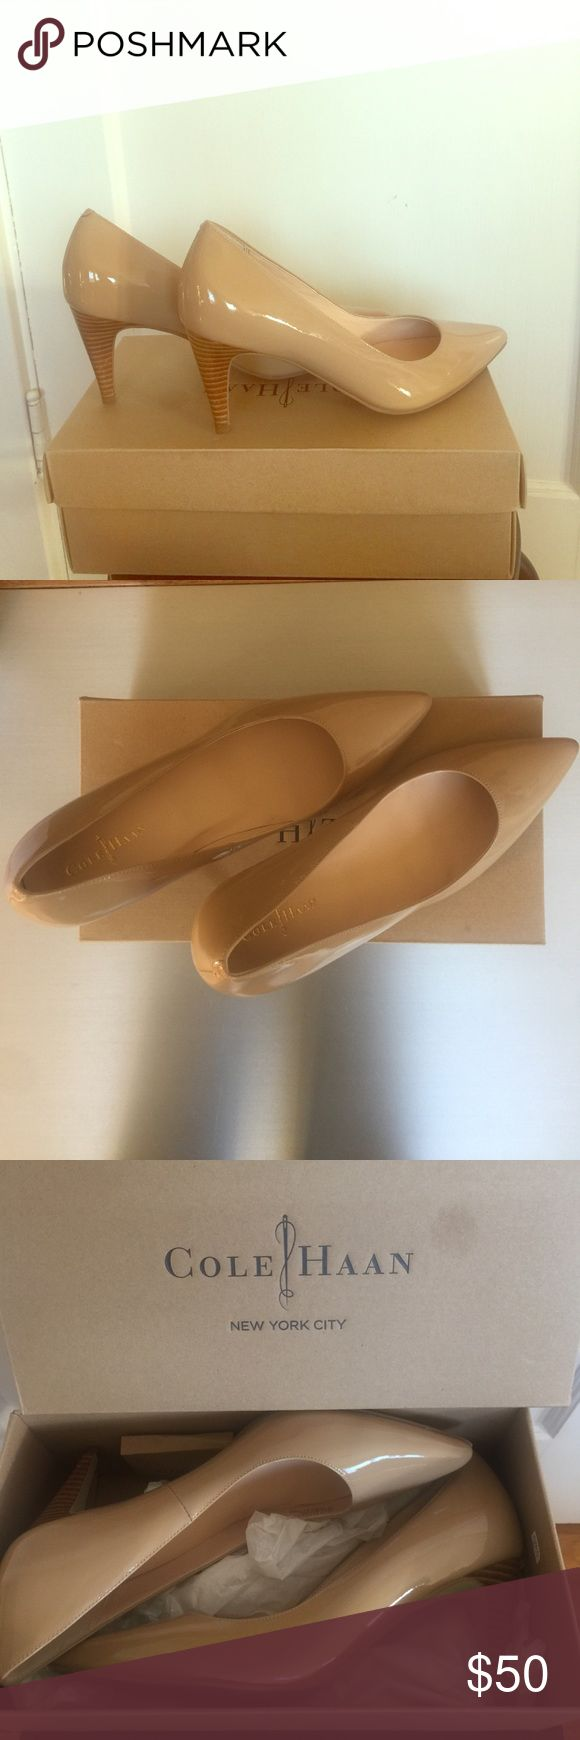 Cole Haan air Juliana pump, NIB Lightly tan colored pumps, in sandstone patent leather. Nike Air technology makes these crazy comfortable. Never worn, new in box. Cole Haan Shoes Heels